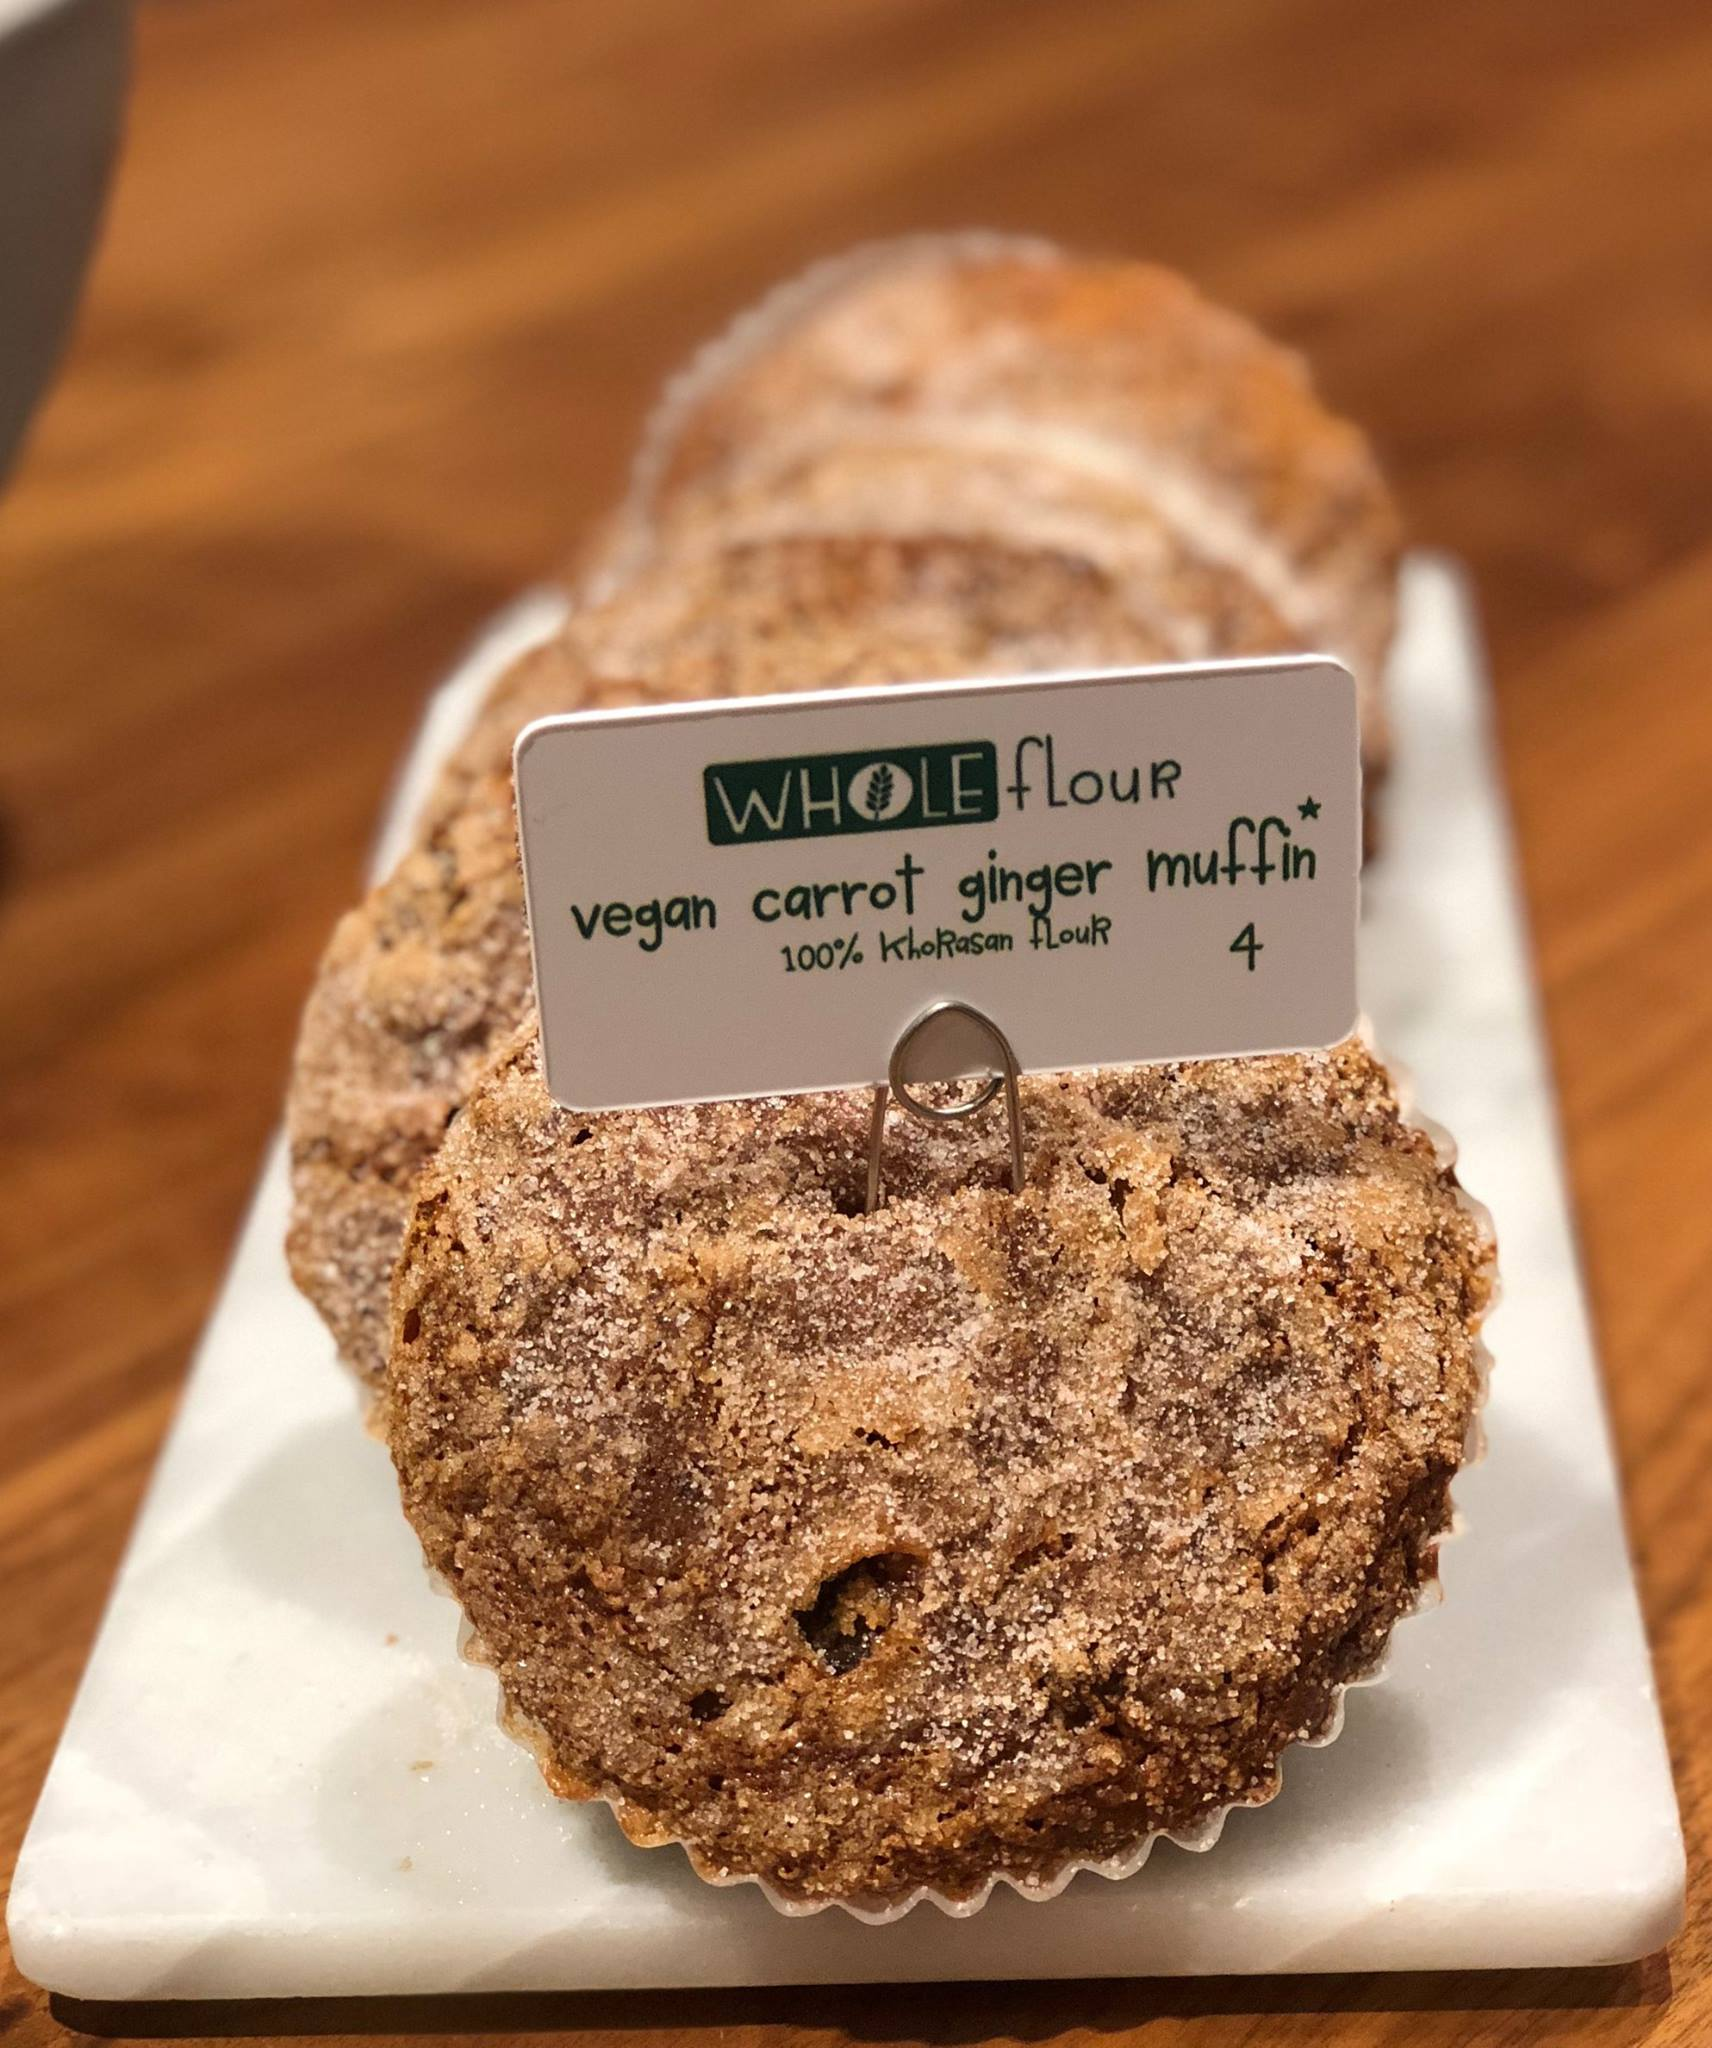 Vegan Carrot Ginger Muffin Made from Whole Grain Khorasan wheat flour. Image Courtesy of Flour Bakery